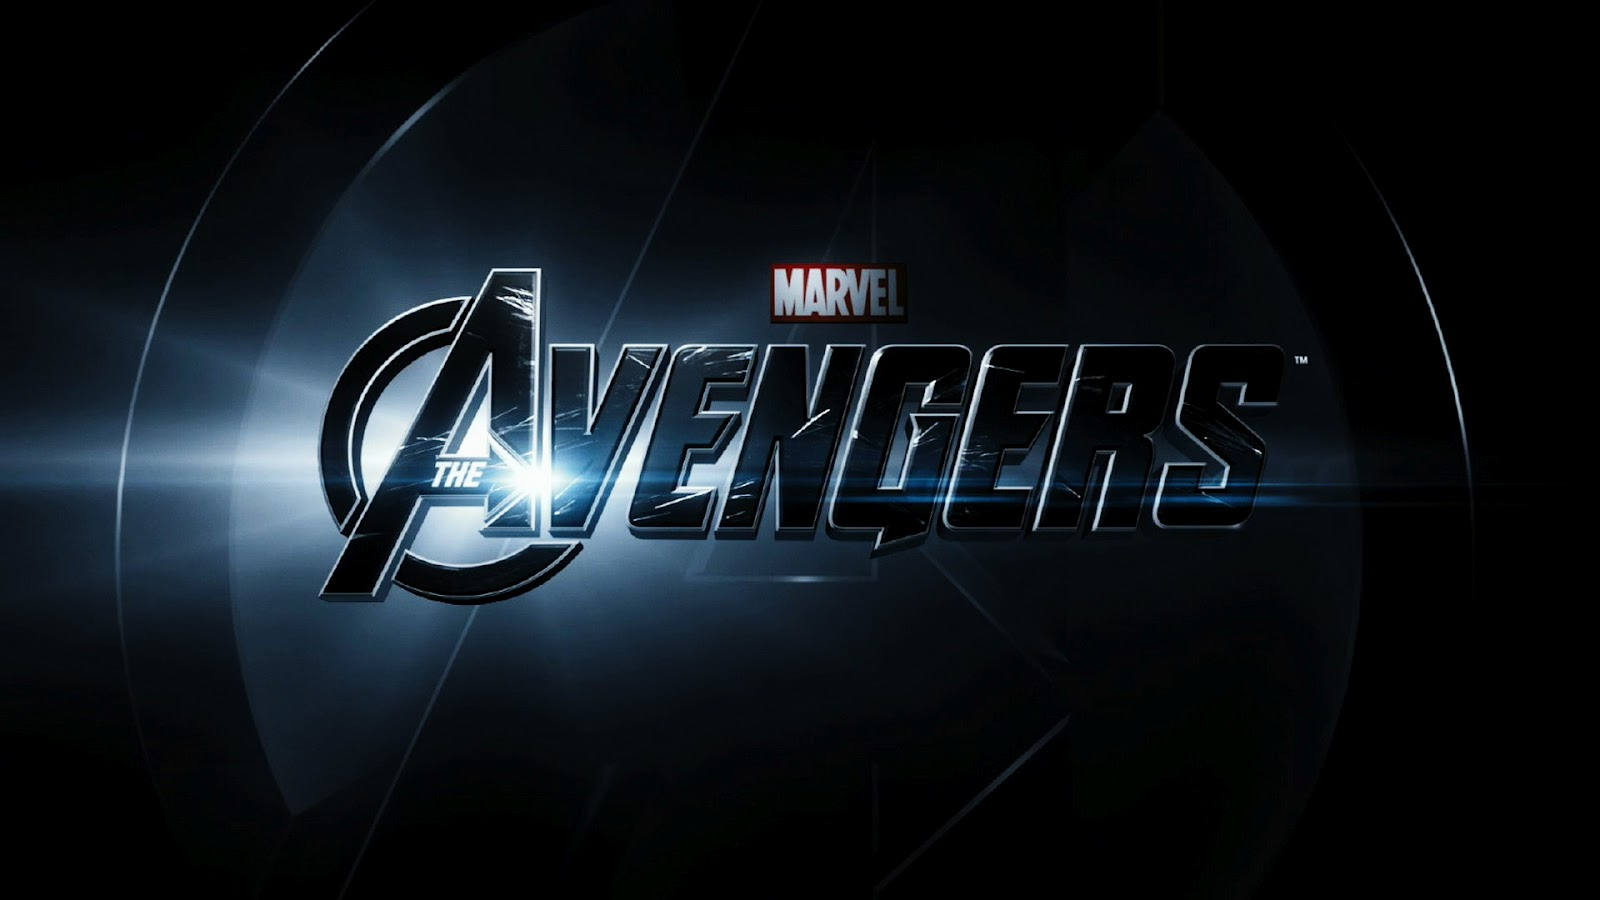 Popular Wallpaper Mac Marvel - Marvel_The_Avengers_Logo_HD_Wallpaper-Vvallpaper  Snapshot_707989.jpg